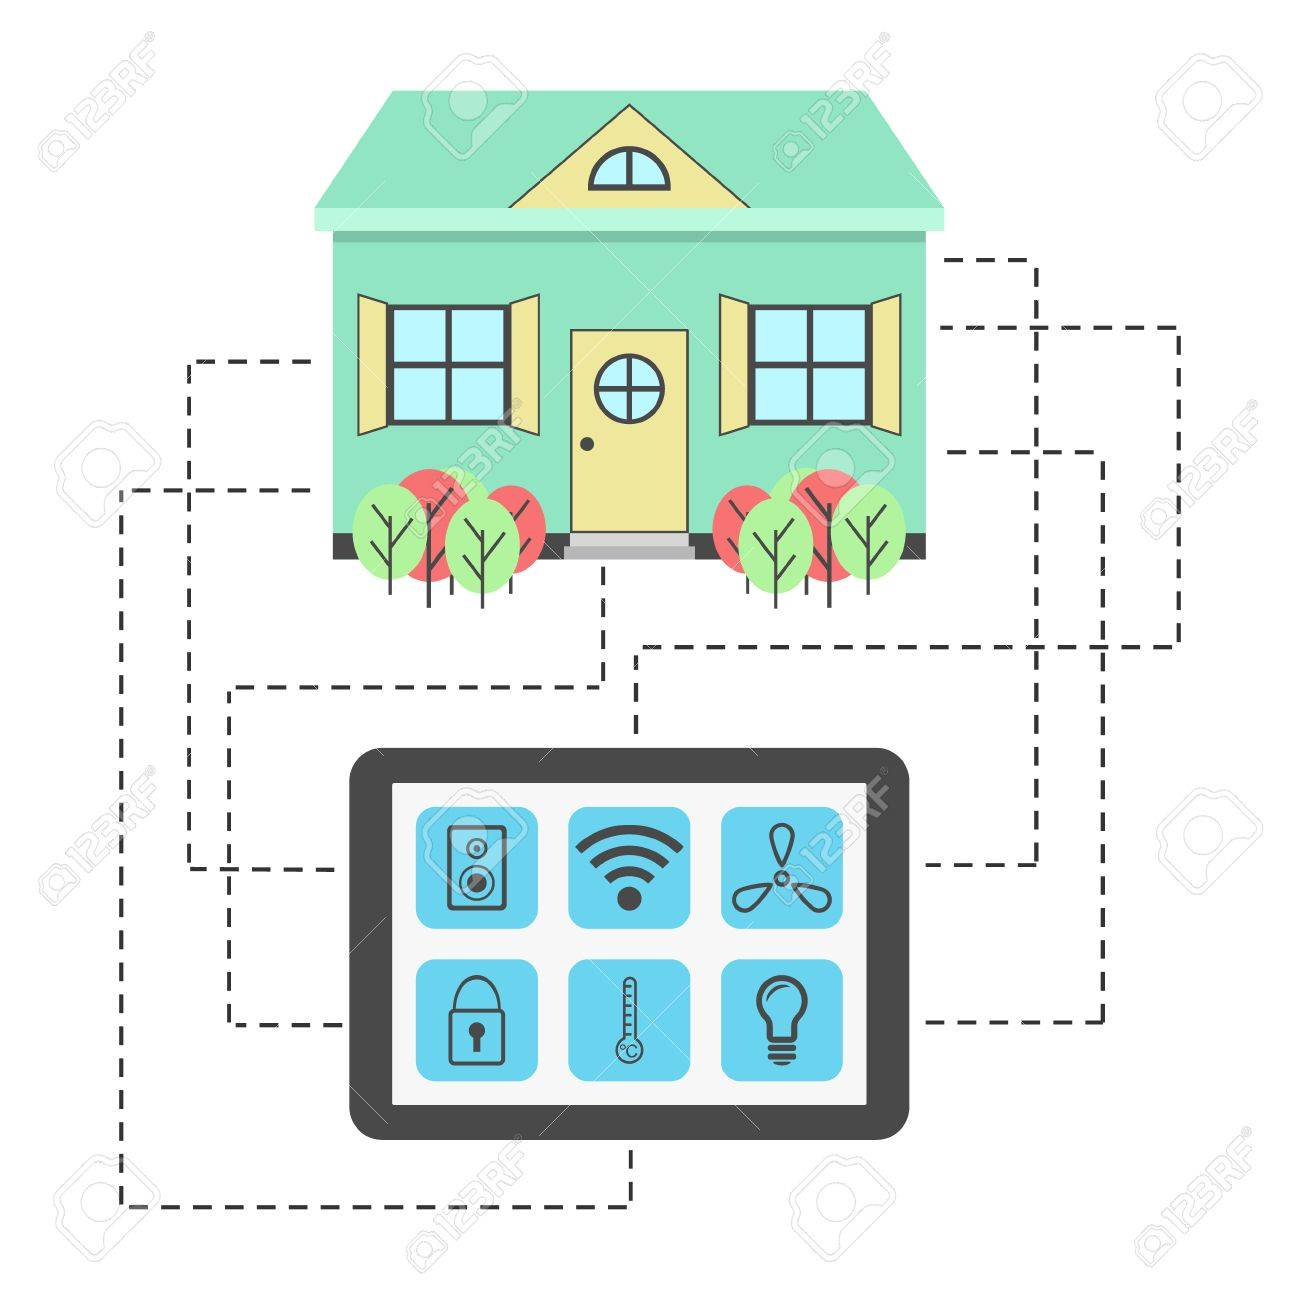 Concept Of Smart House Technology System With Centralized Control ...